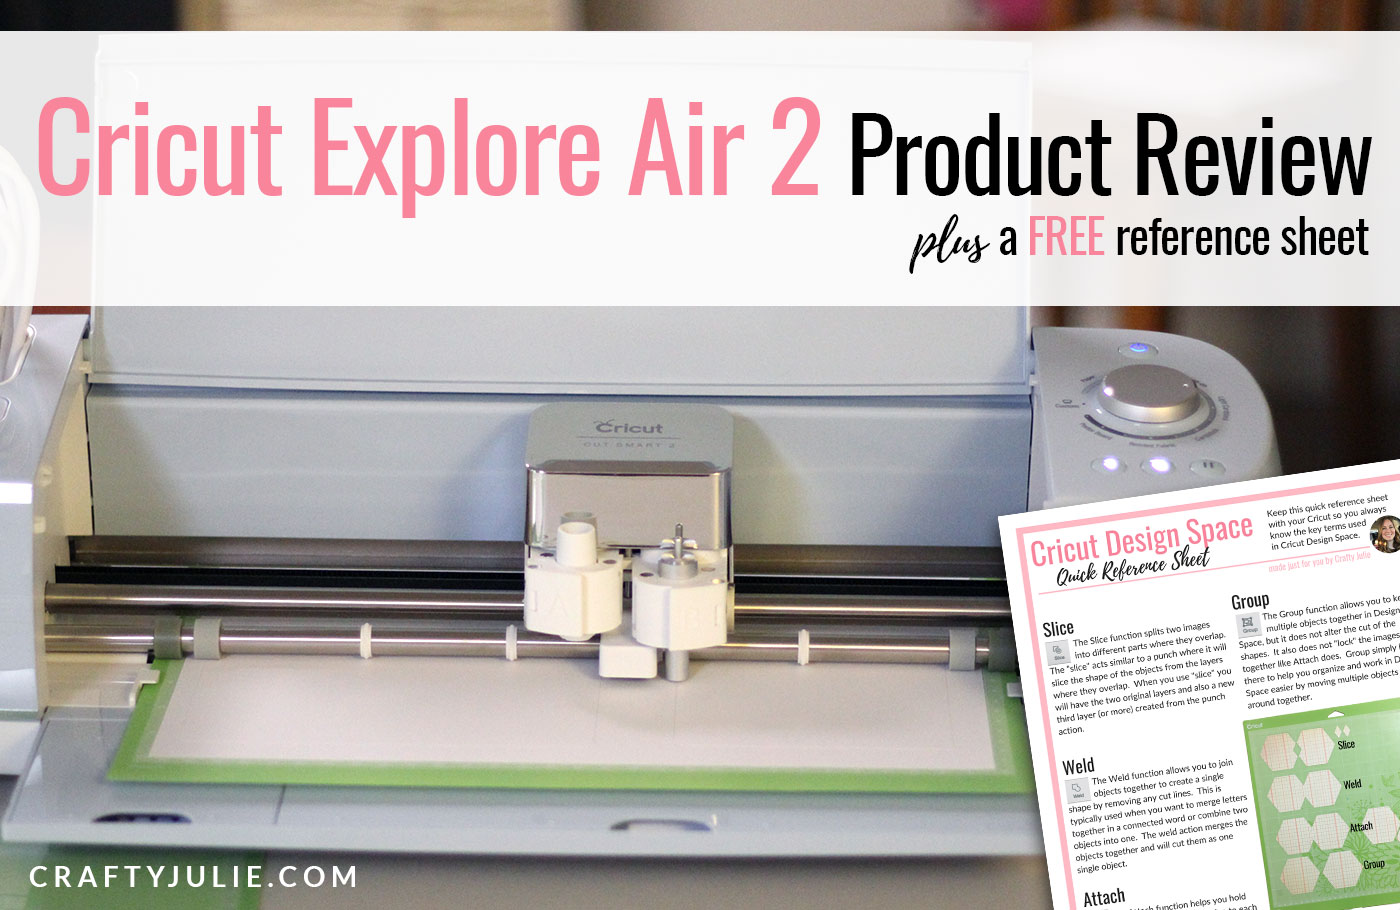 Crafty Julie | Cricut Explore Air 2 Review from a Scrapbooker